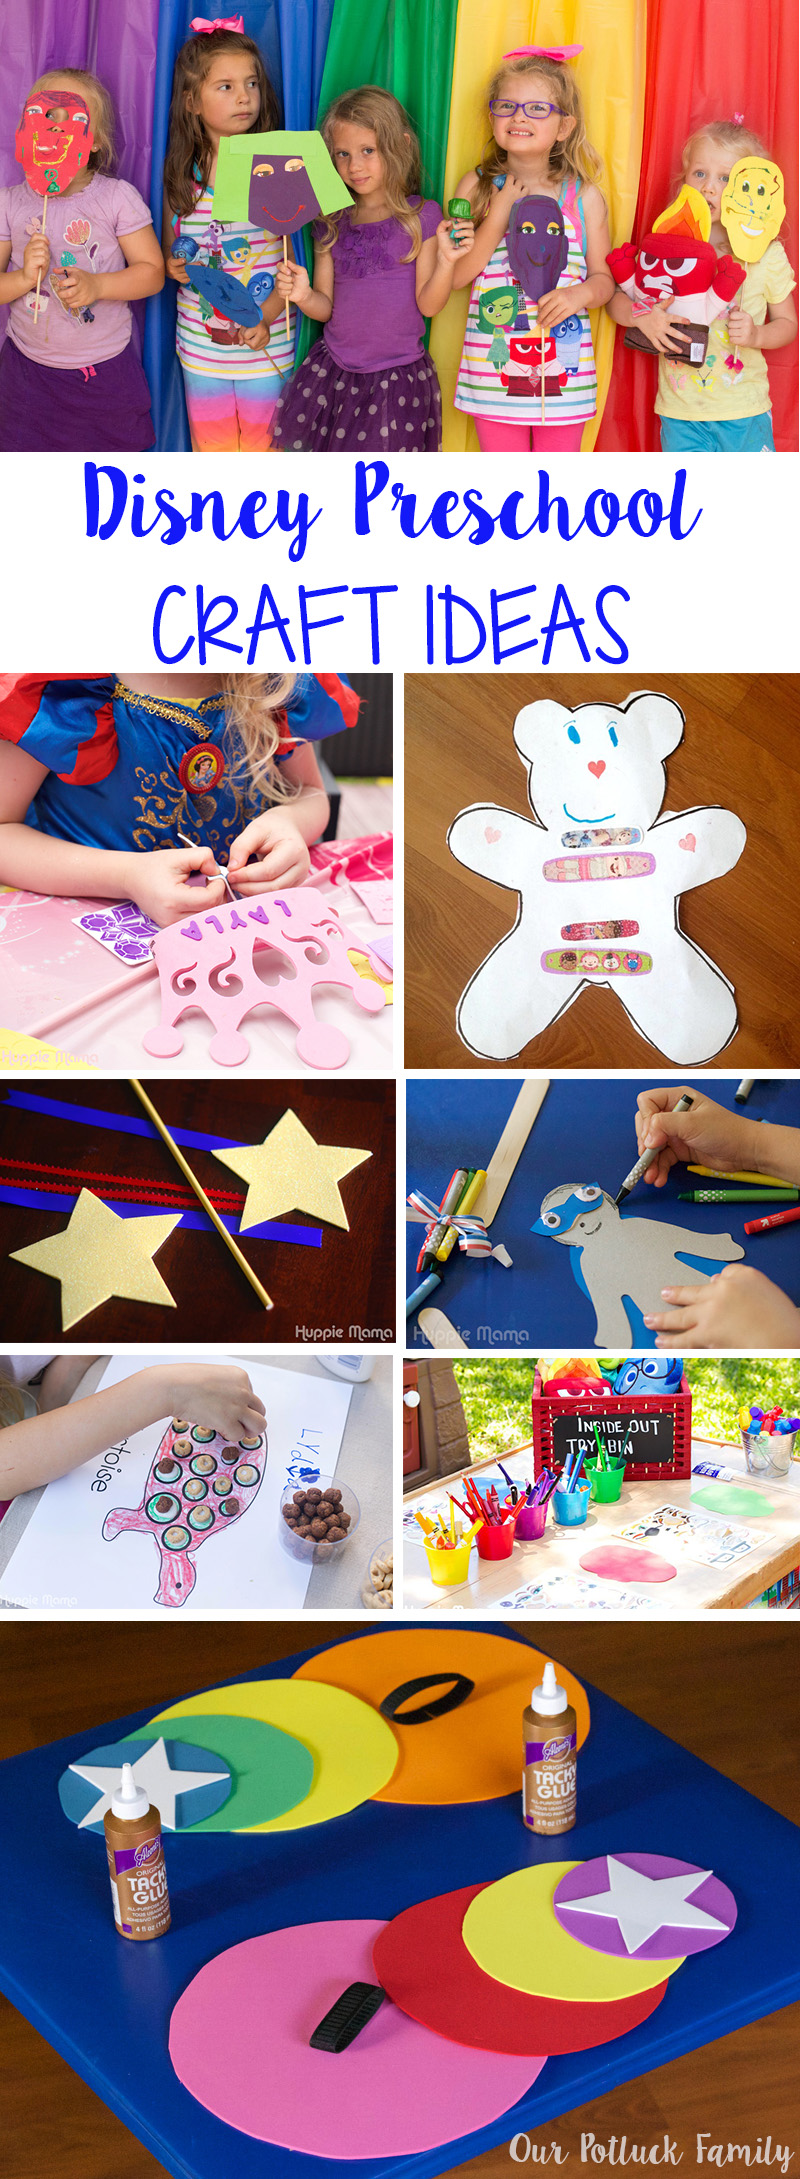 Disney Preschool Craft Ideas